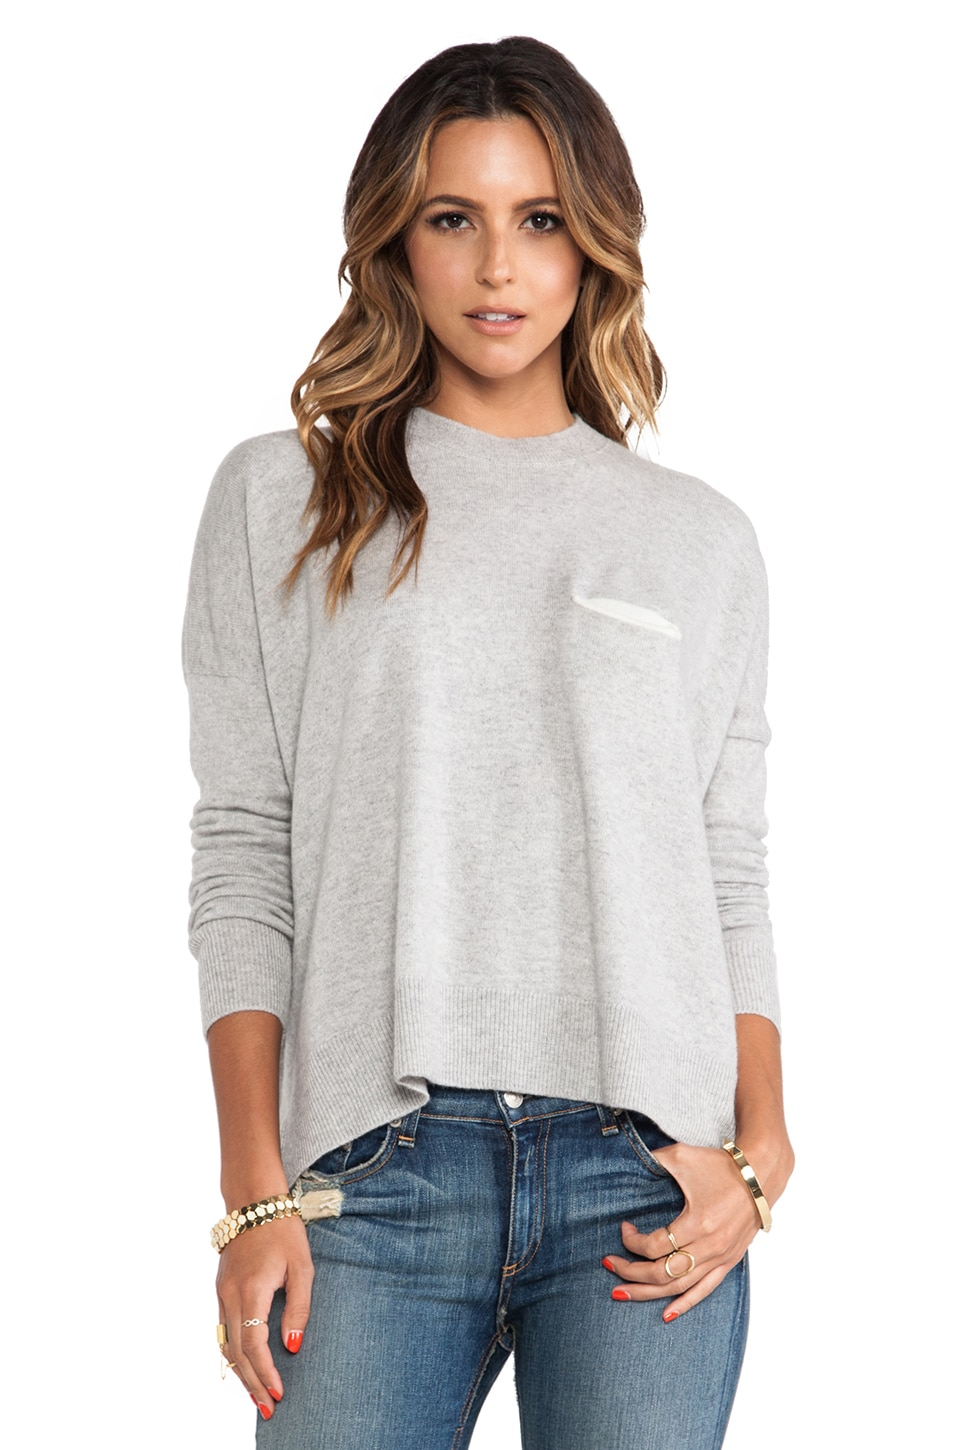 DemyLee Bennie Sweater in Light Heather Grey